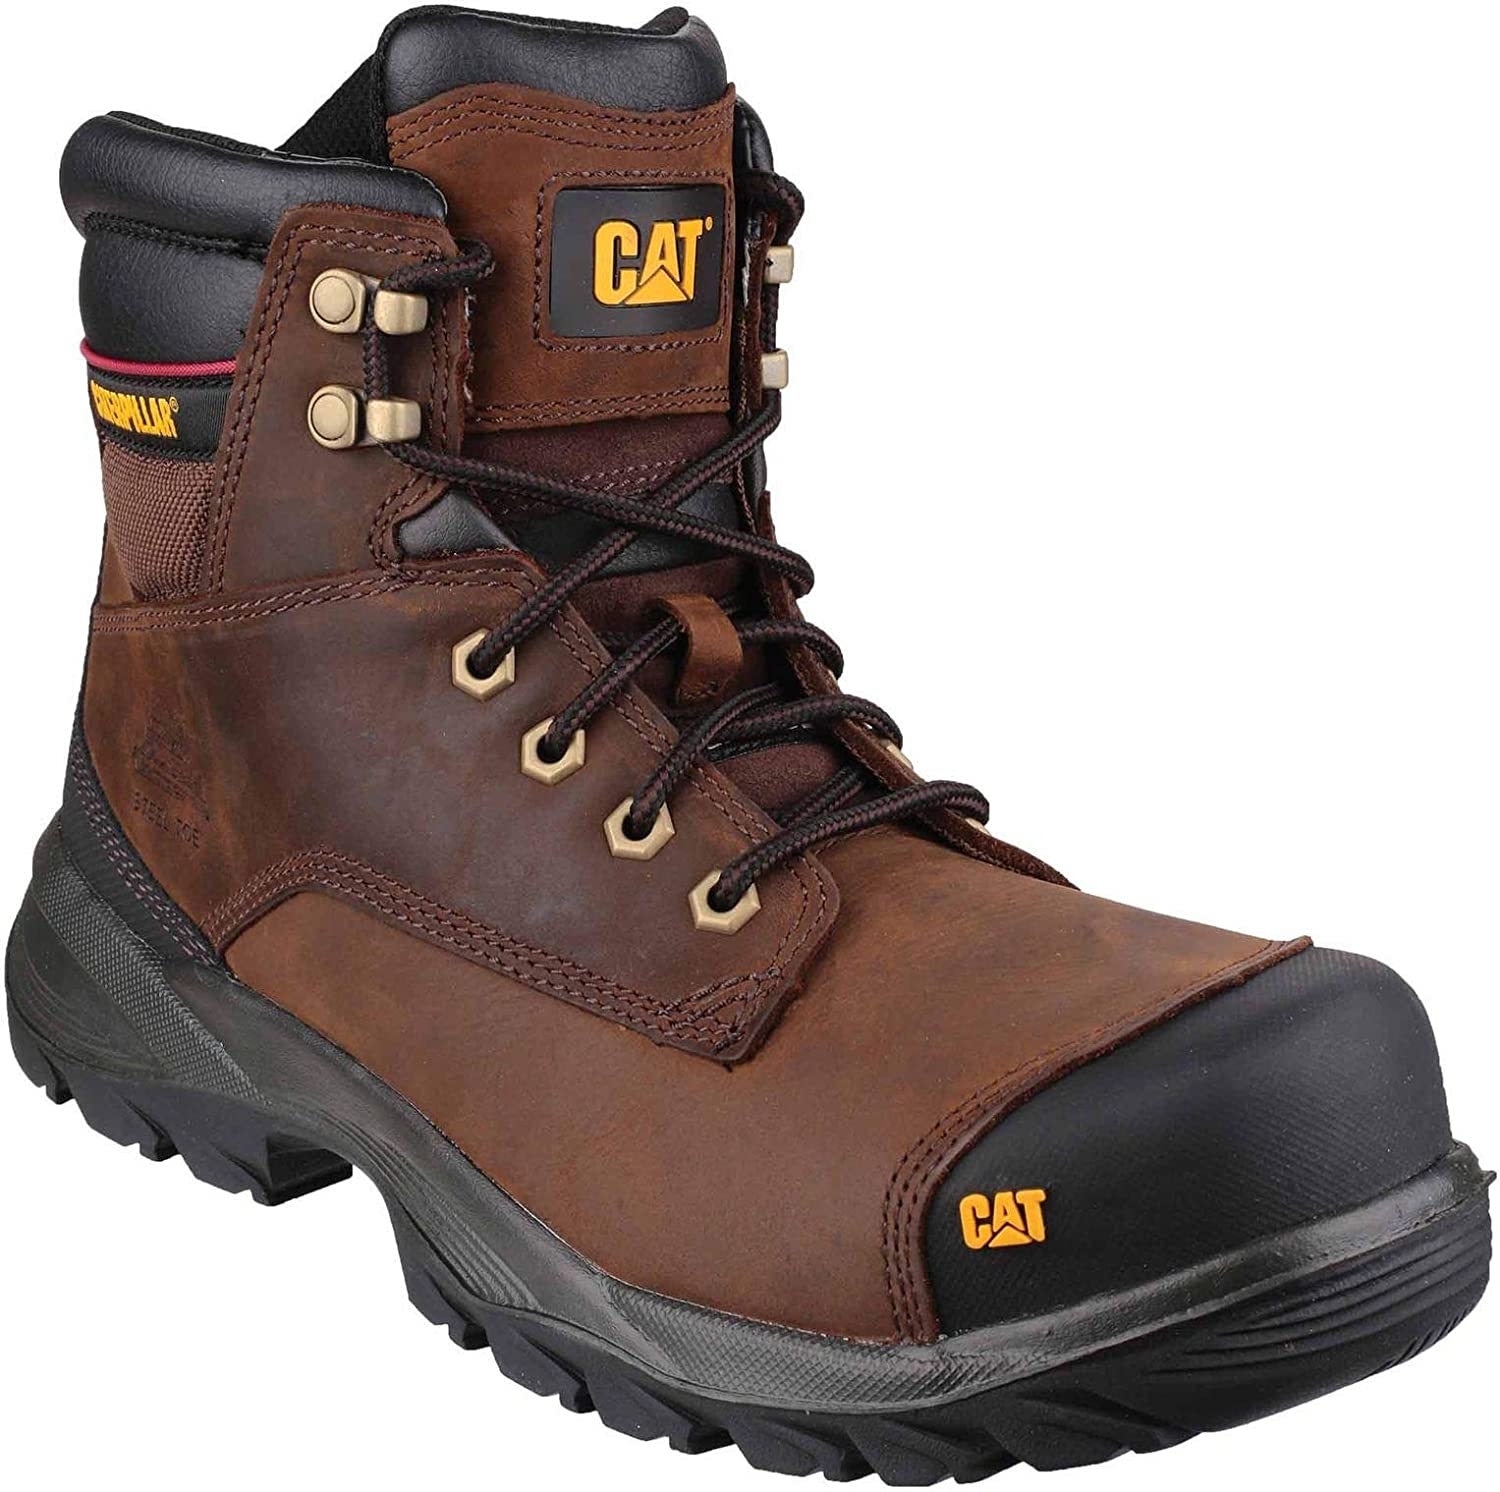 Cat Spiro Water Resistent Safety Boot bspringaaa Storlek 10